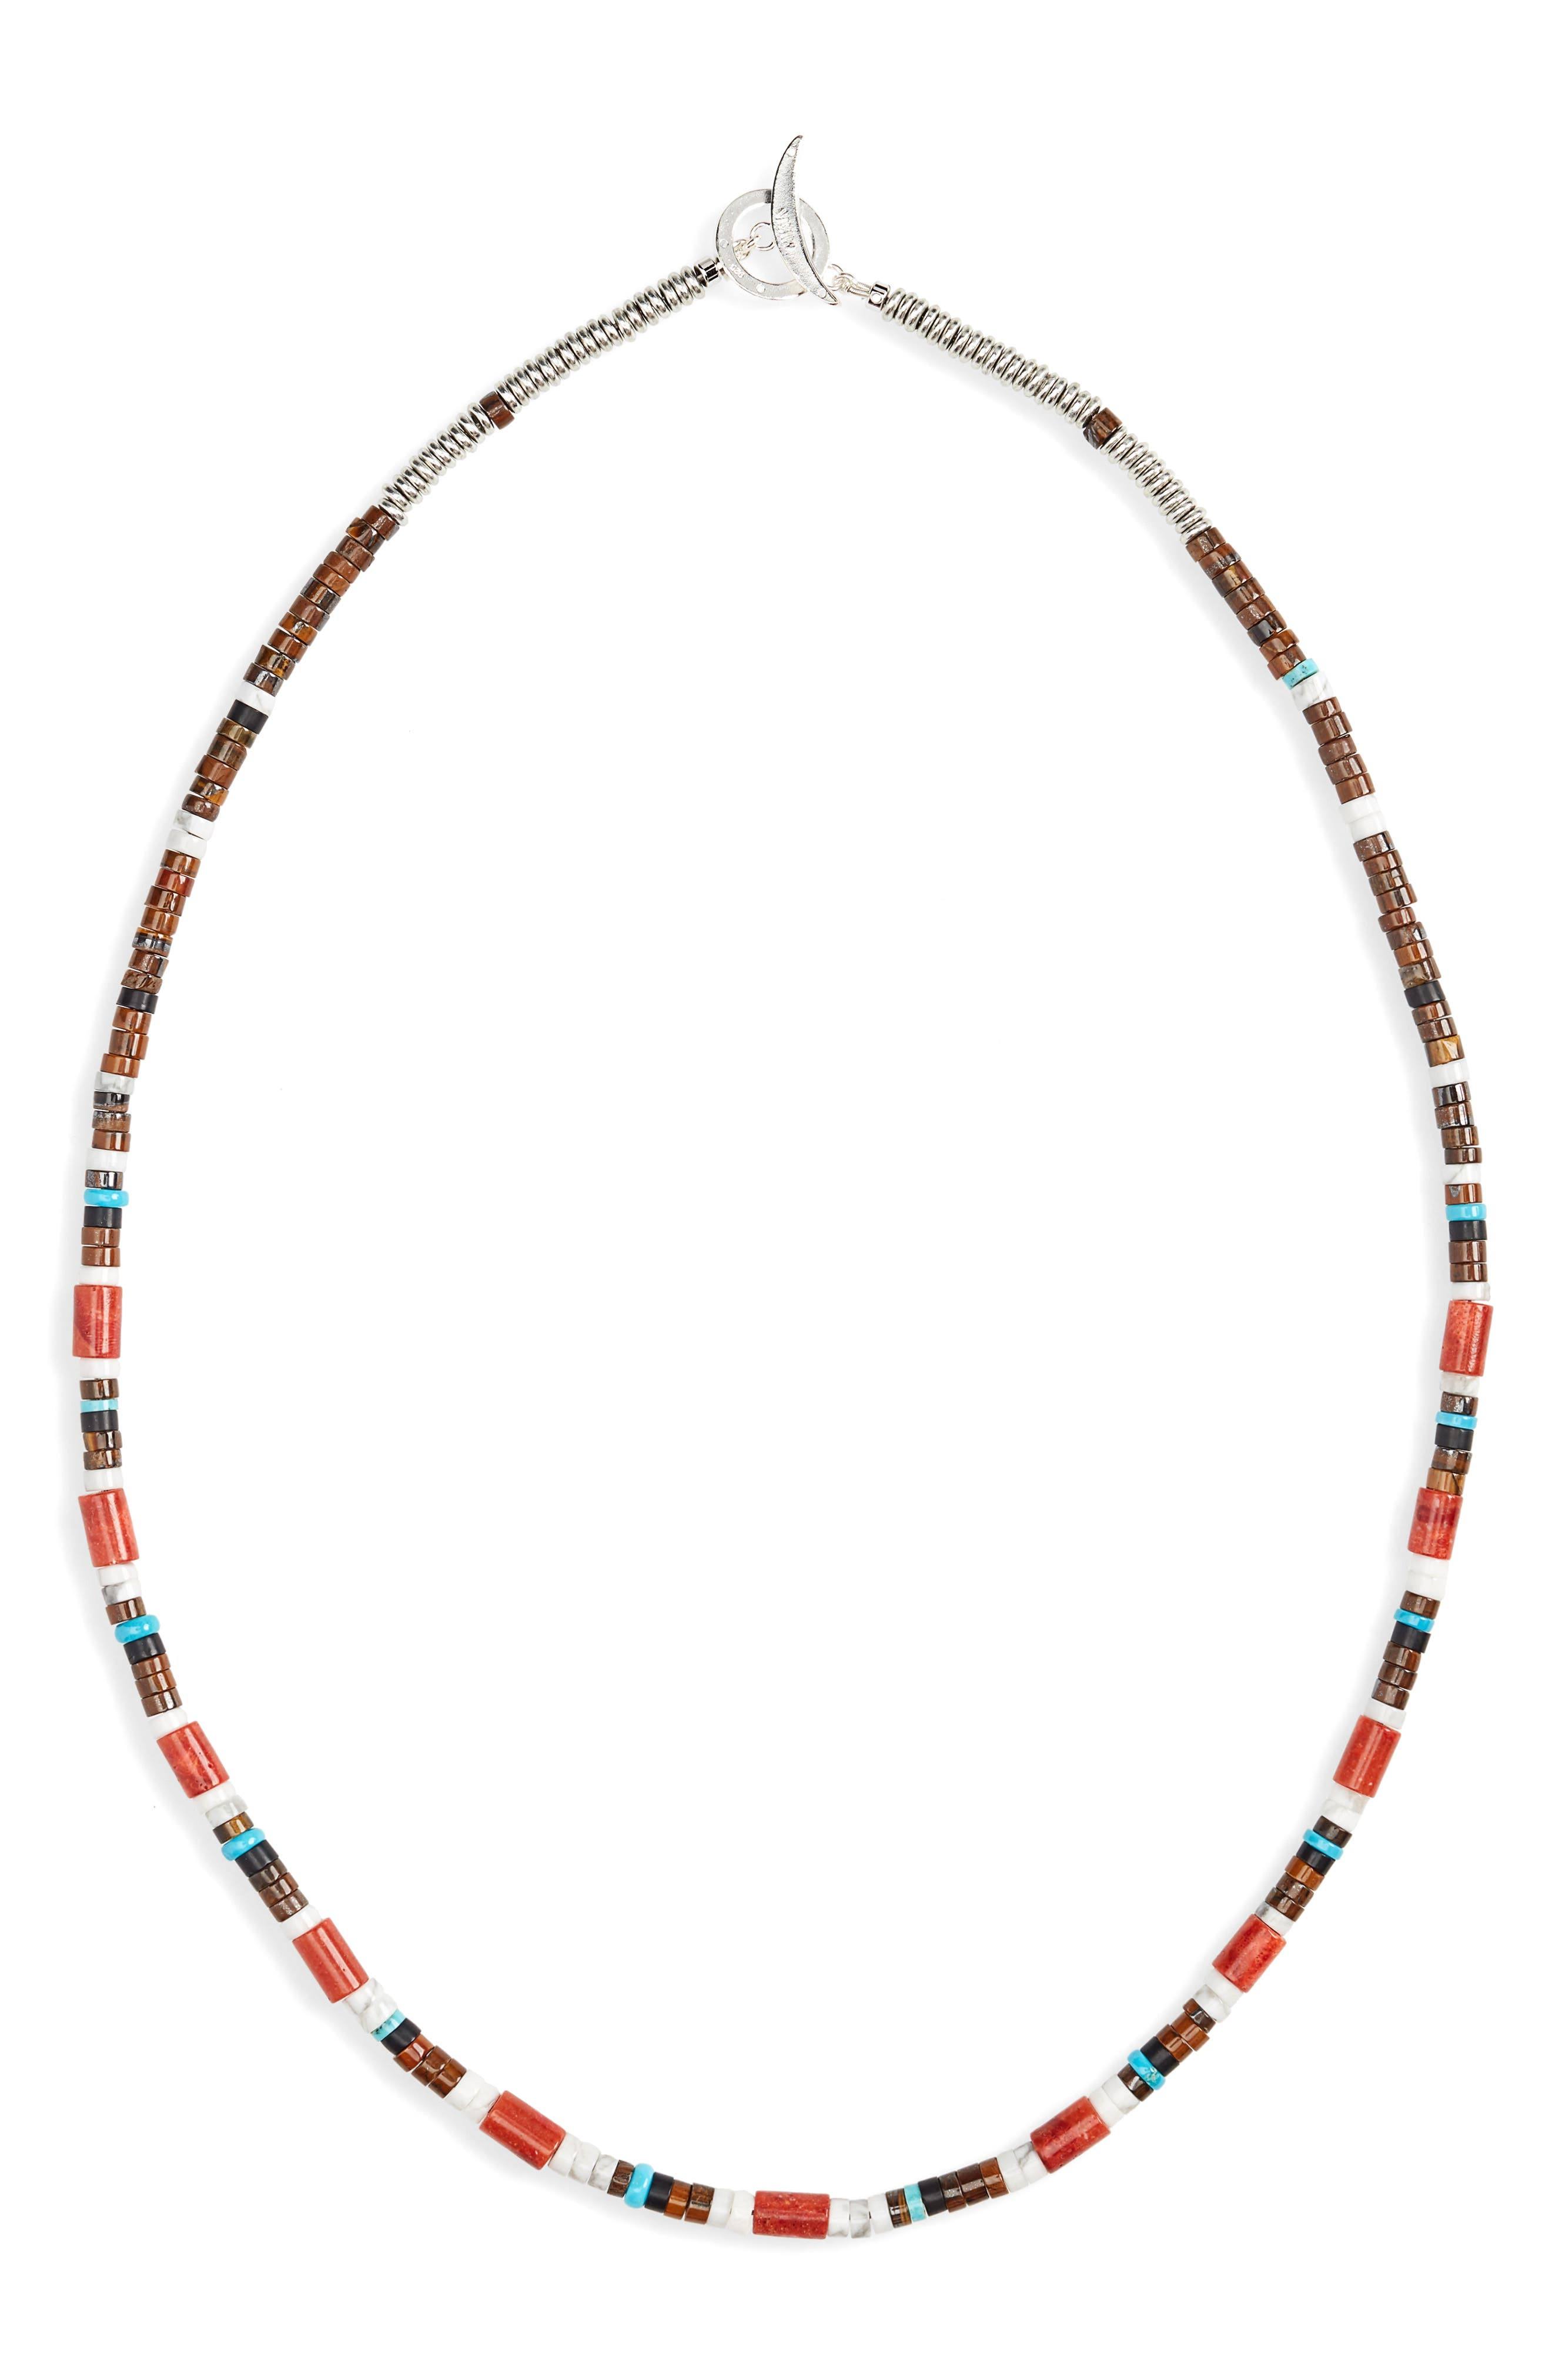 MIKIA Bead Necklace in Coral/ Turquoise